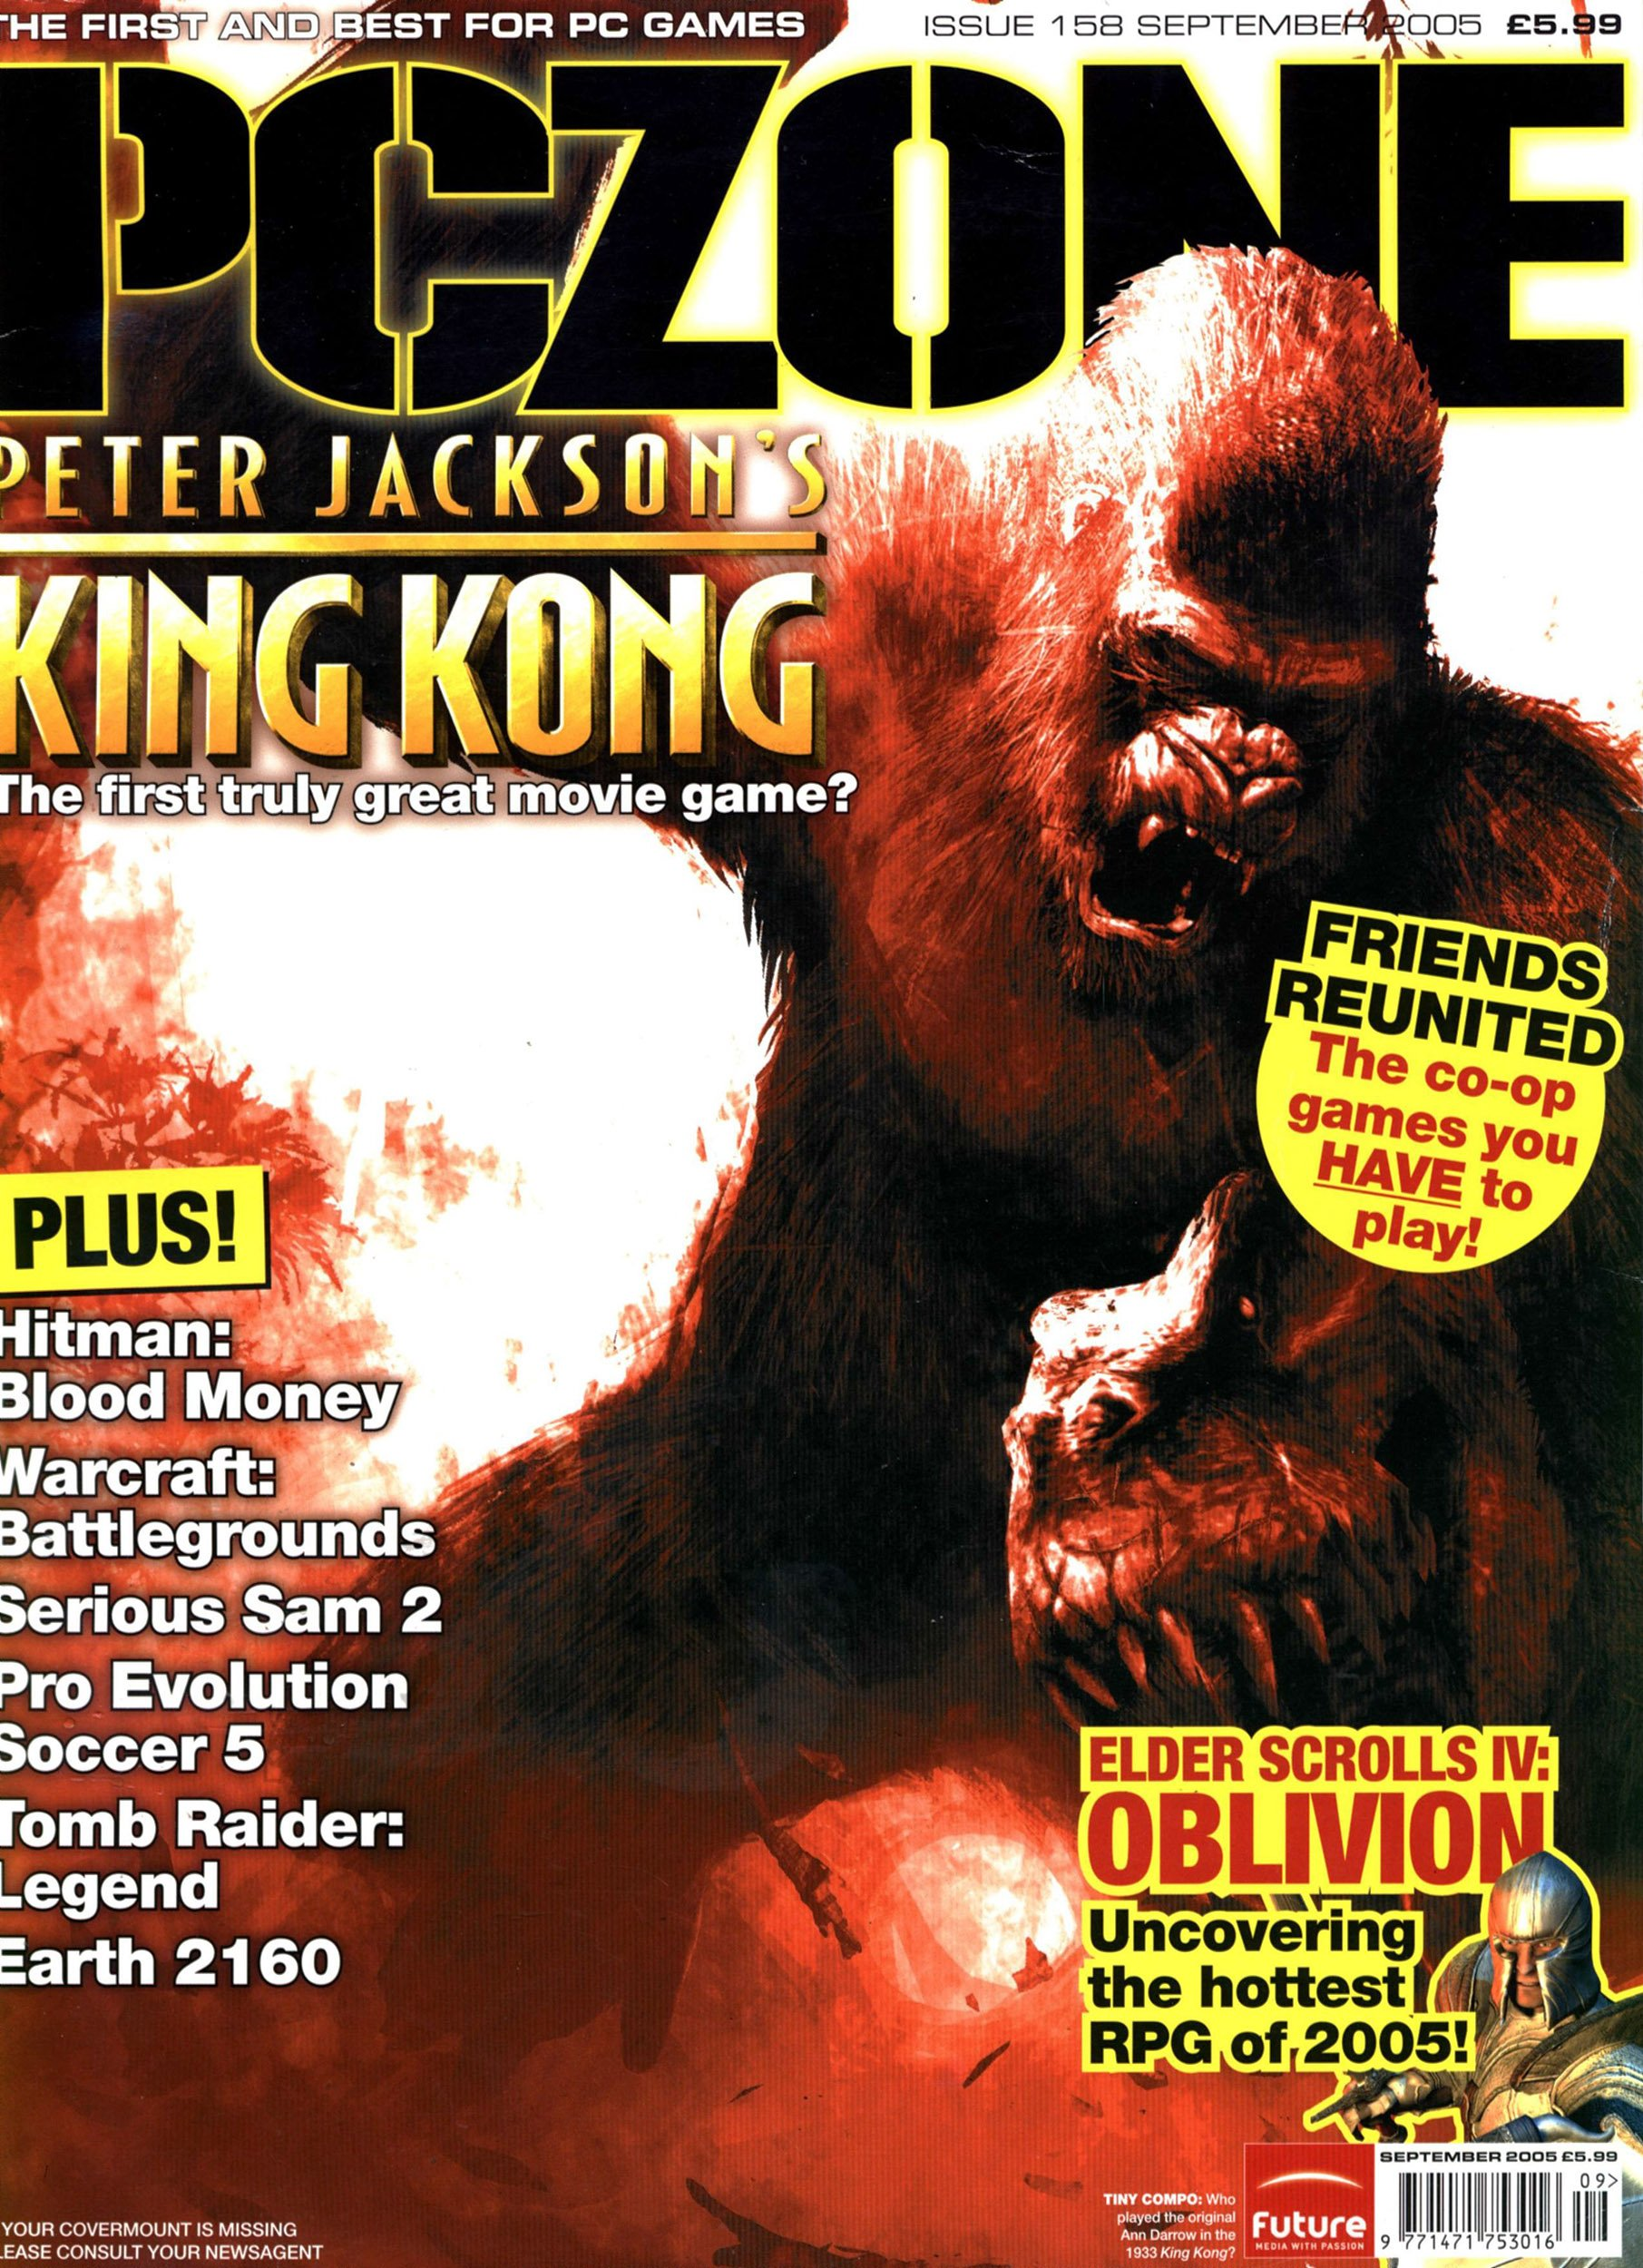 PC Zone Issue 158 (September 2005)